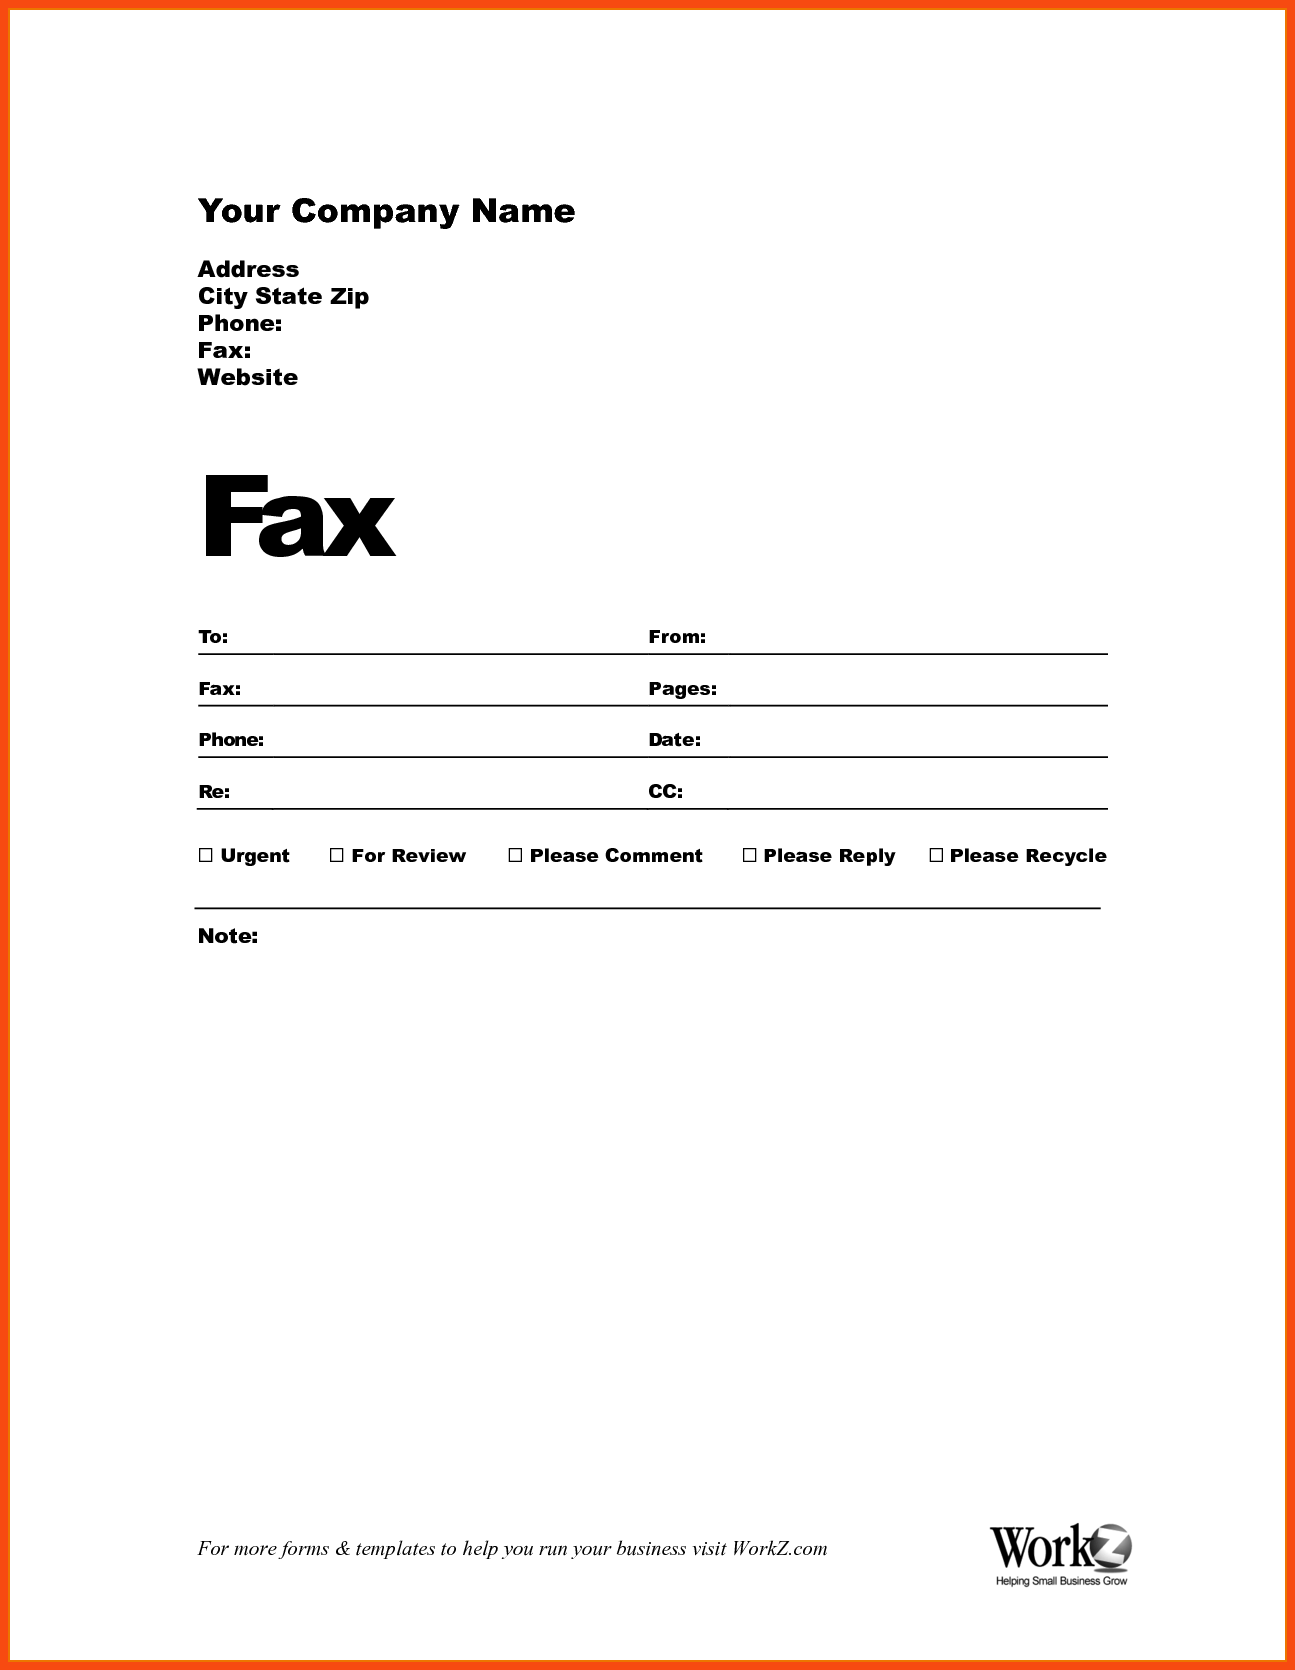 How to fill out a fax cover sheet free fax cover sheet for Cover letter for faxing documents